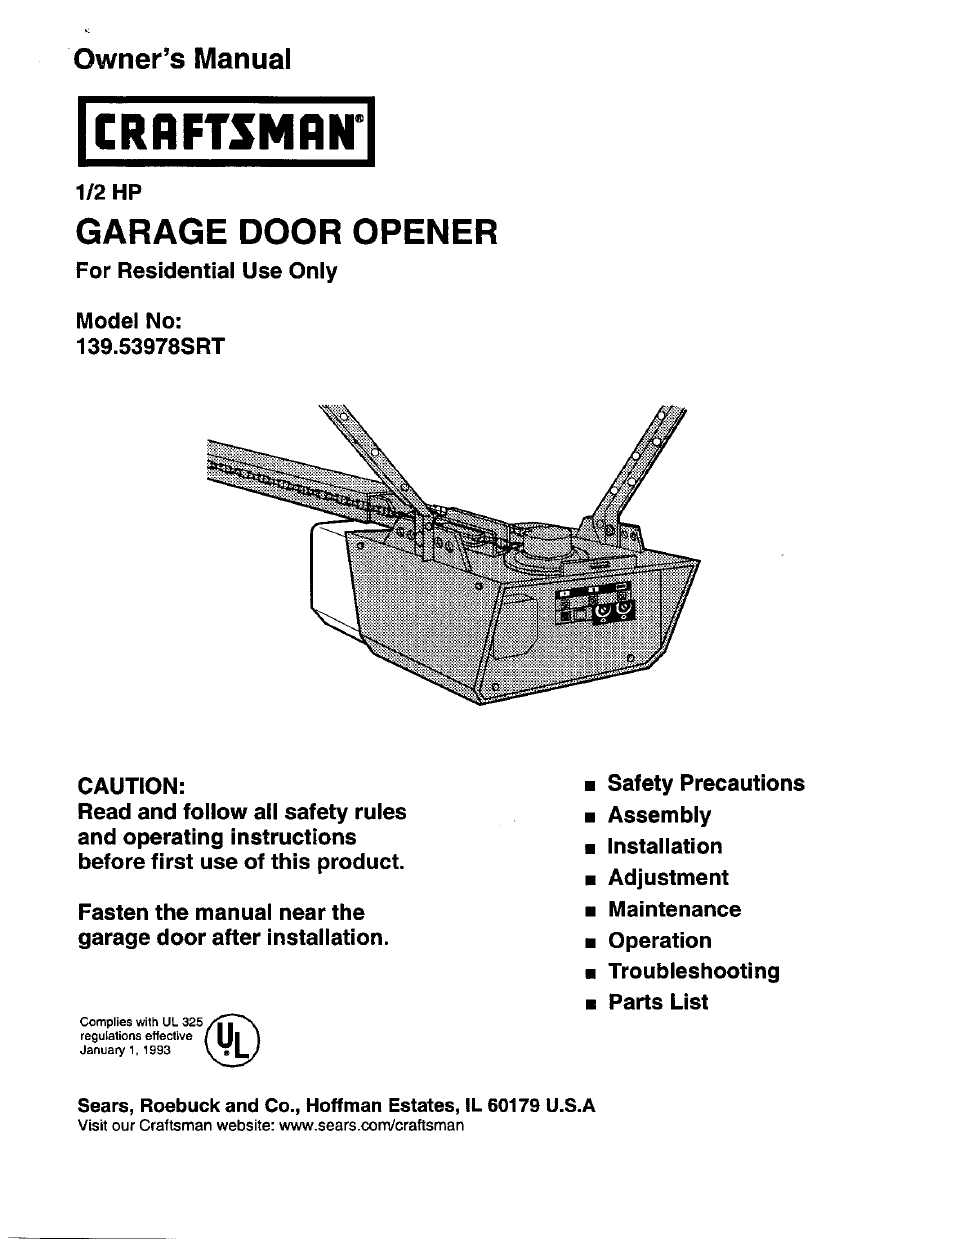 Craftsman 1 2 Hp Garage Door Opener 139 53978srt User Manual 40 Pages